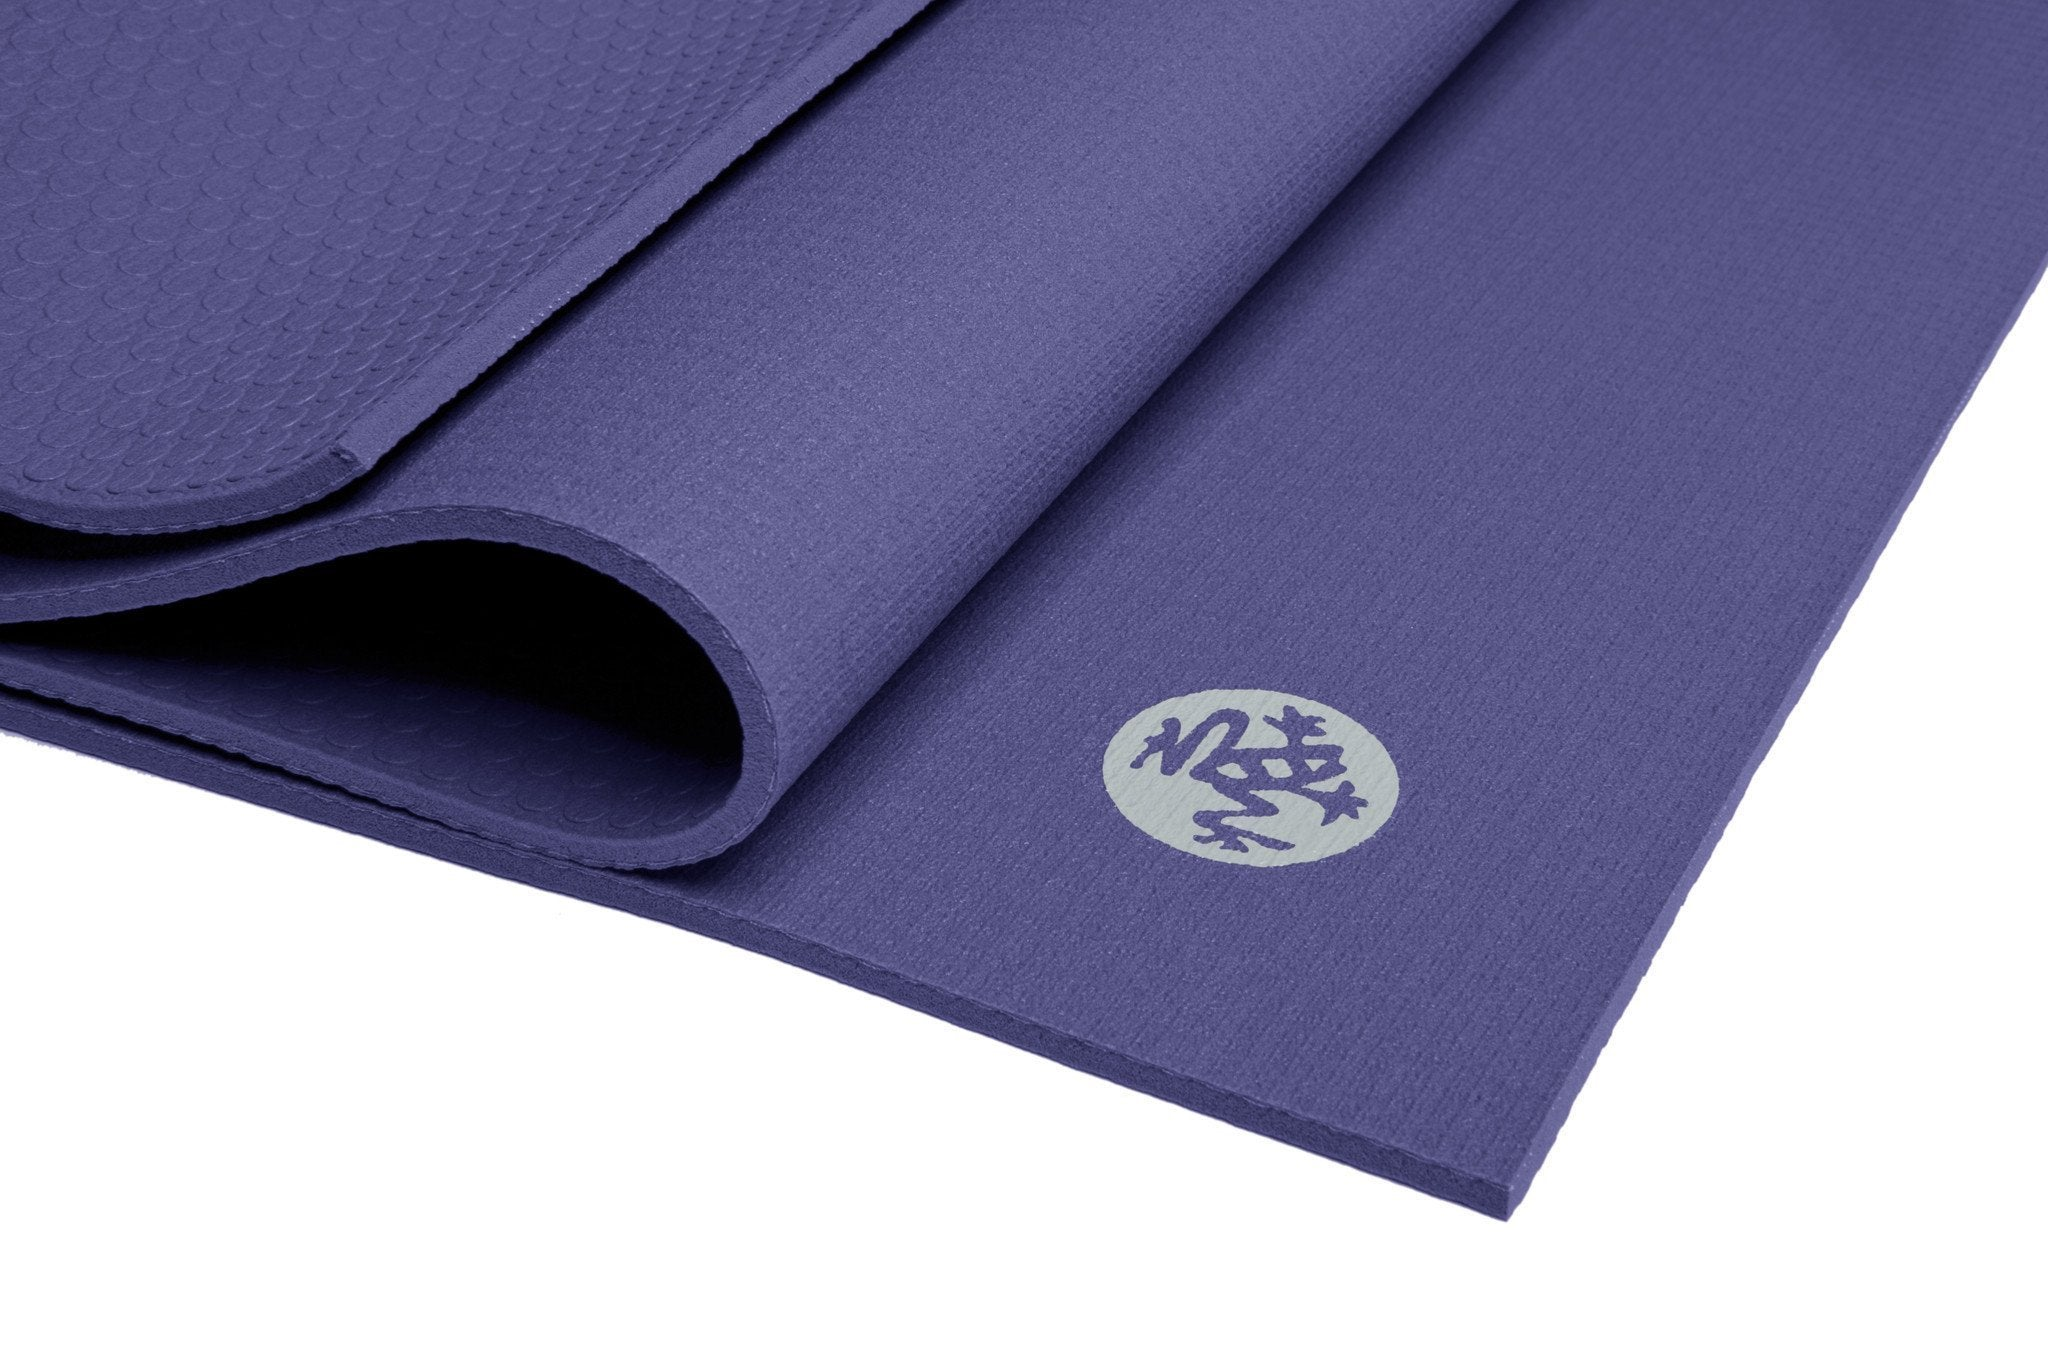 Manduka Prolite Yoga Mats Bolsters Superlite Travel Mats Yoga